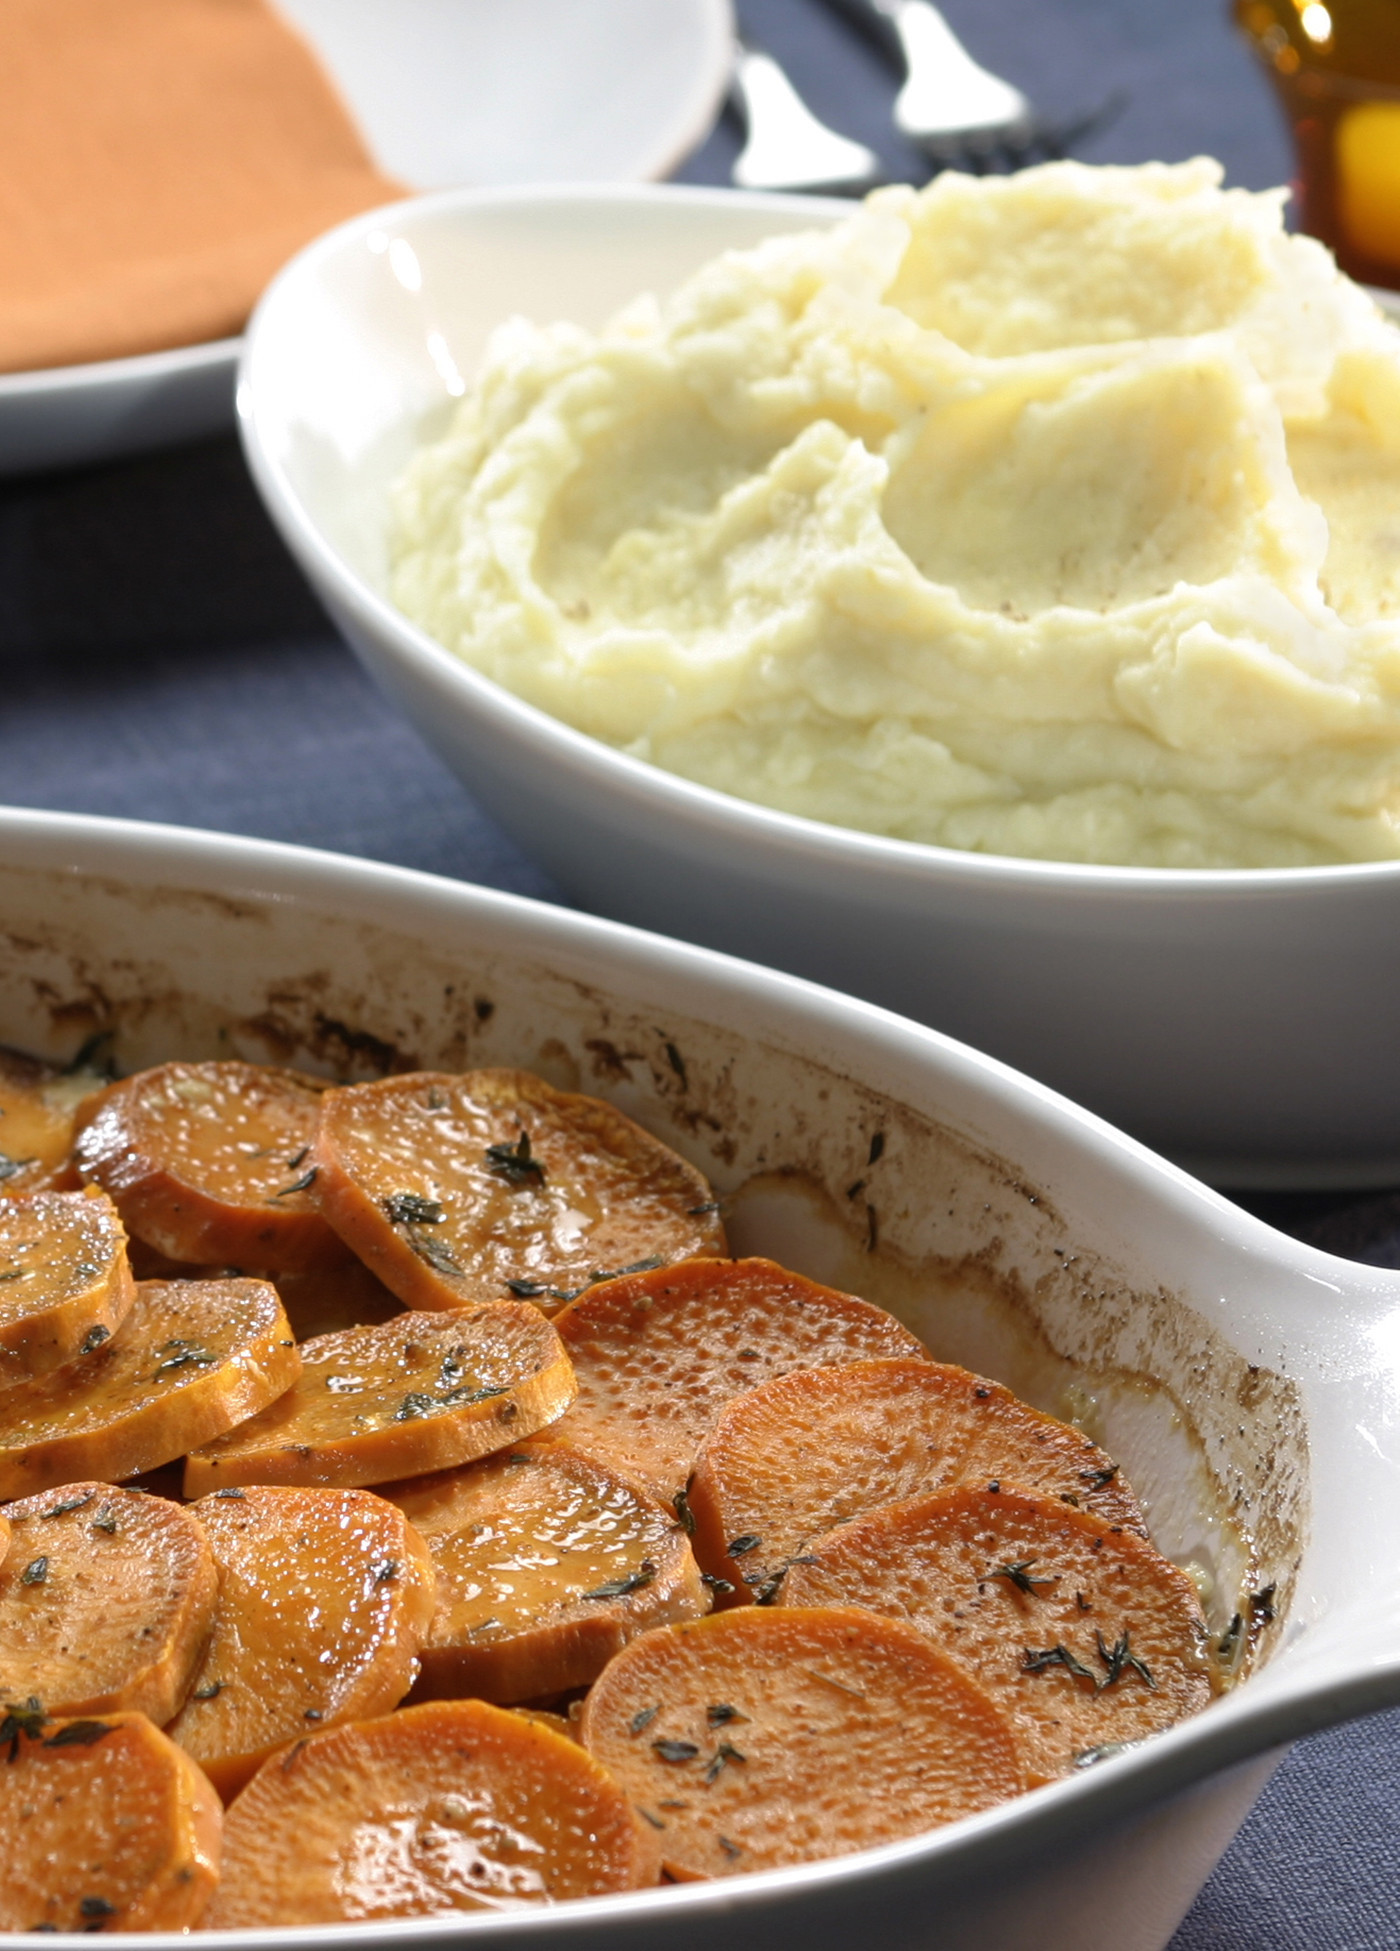 Photos: 97 great Thanksgiving recipes - Creamy mashed potatoes